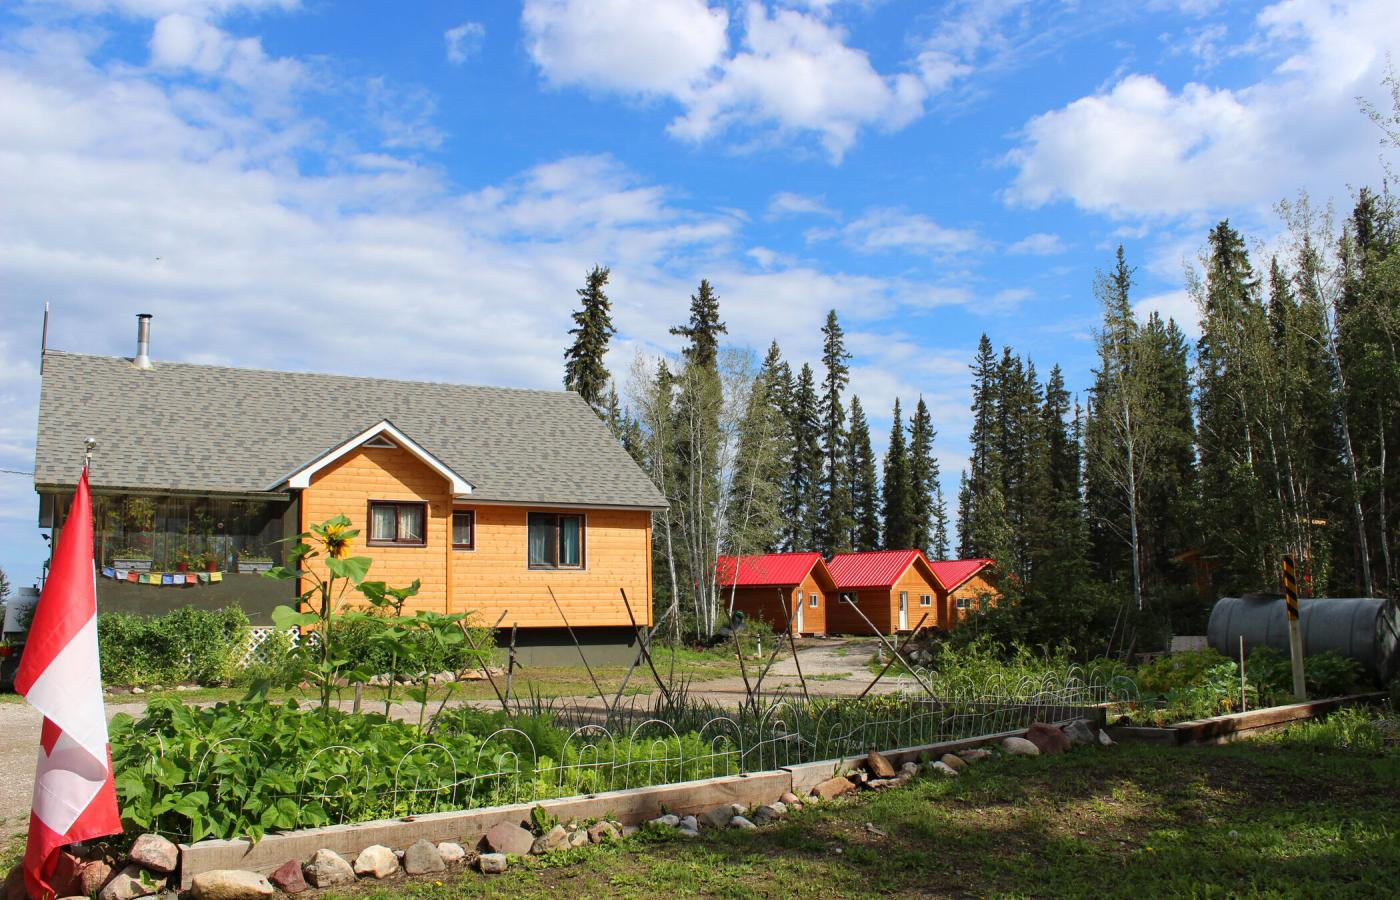 Captain's Cabins, south of Fort Providence on the Mackenzie River, in Canada's Northwest Territories.